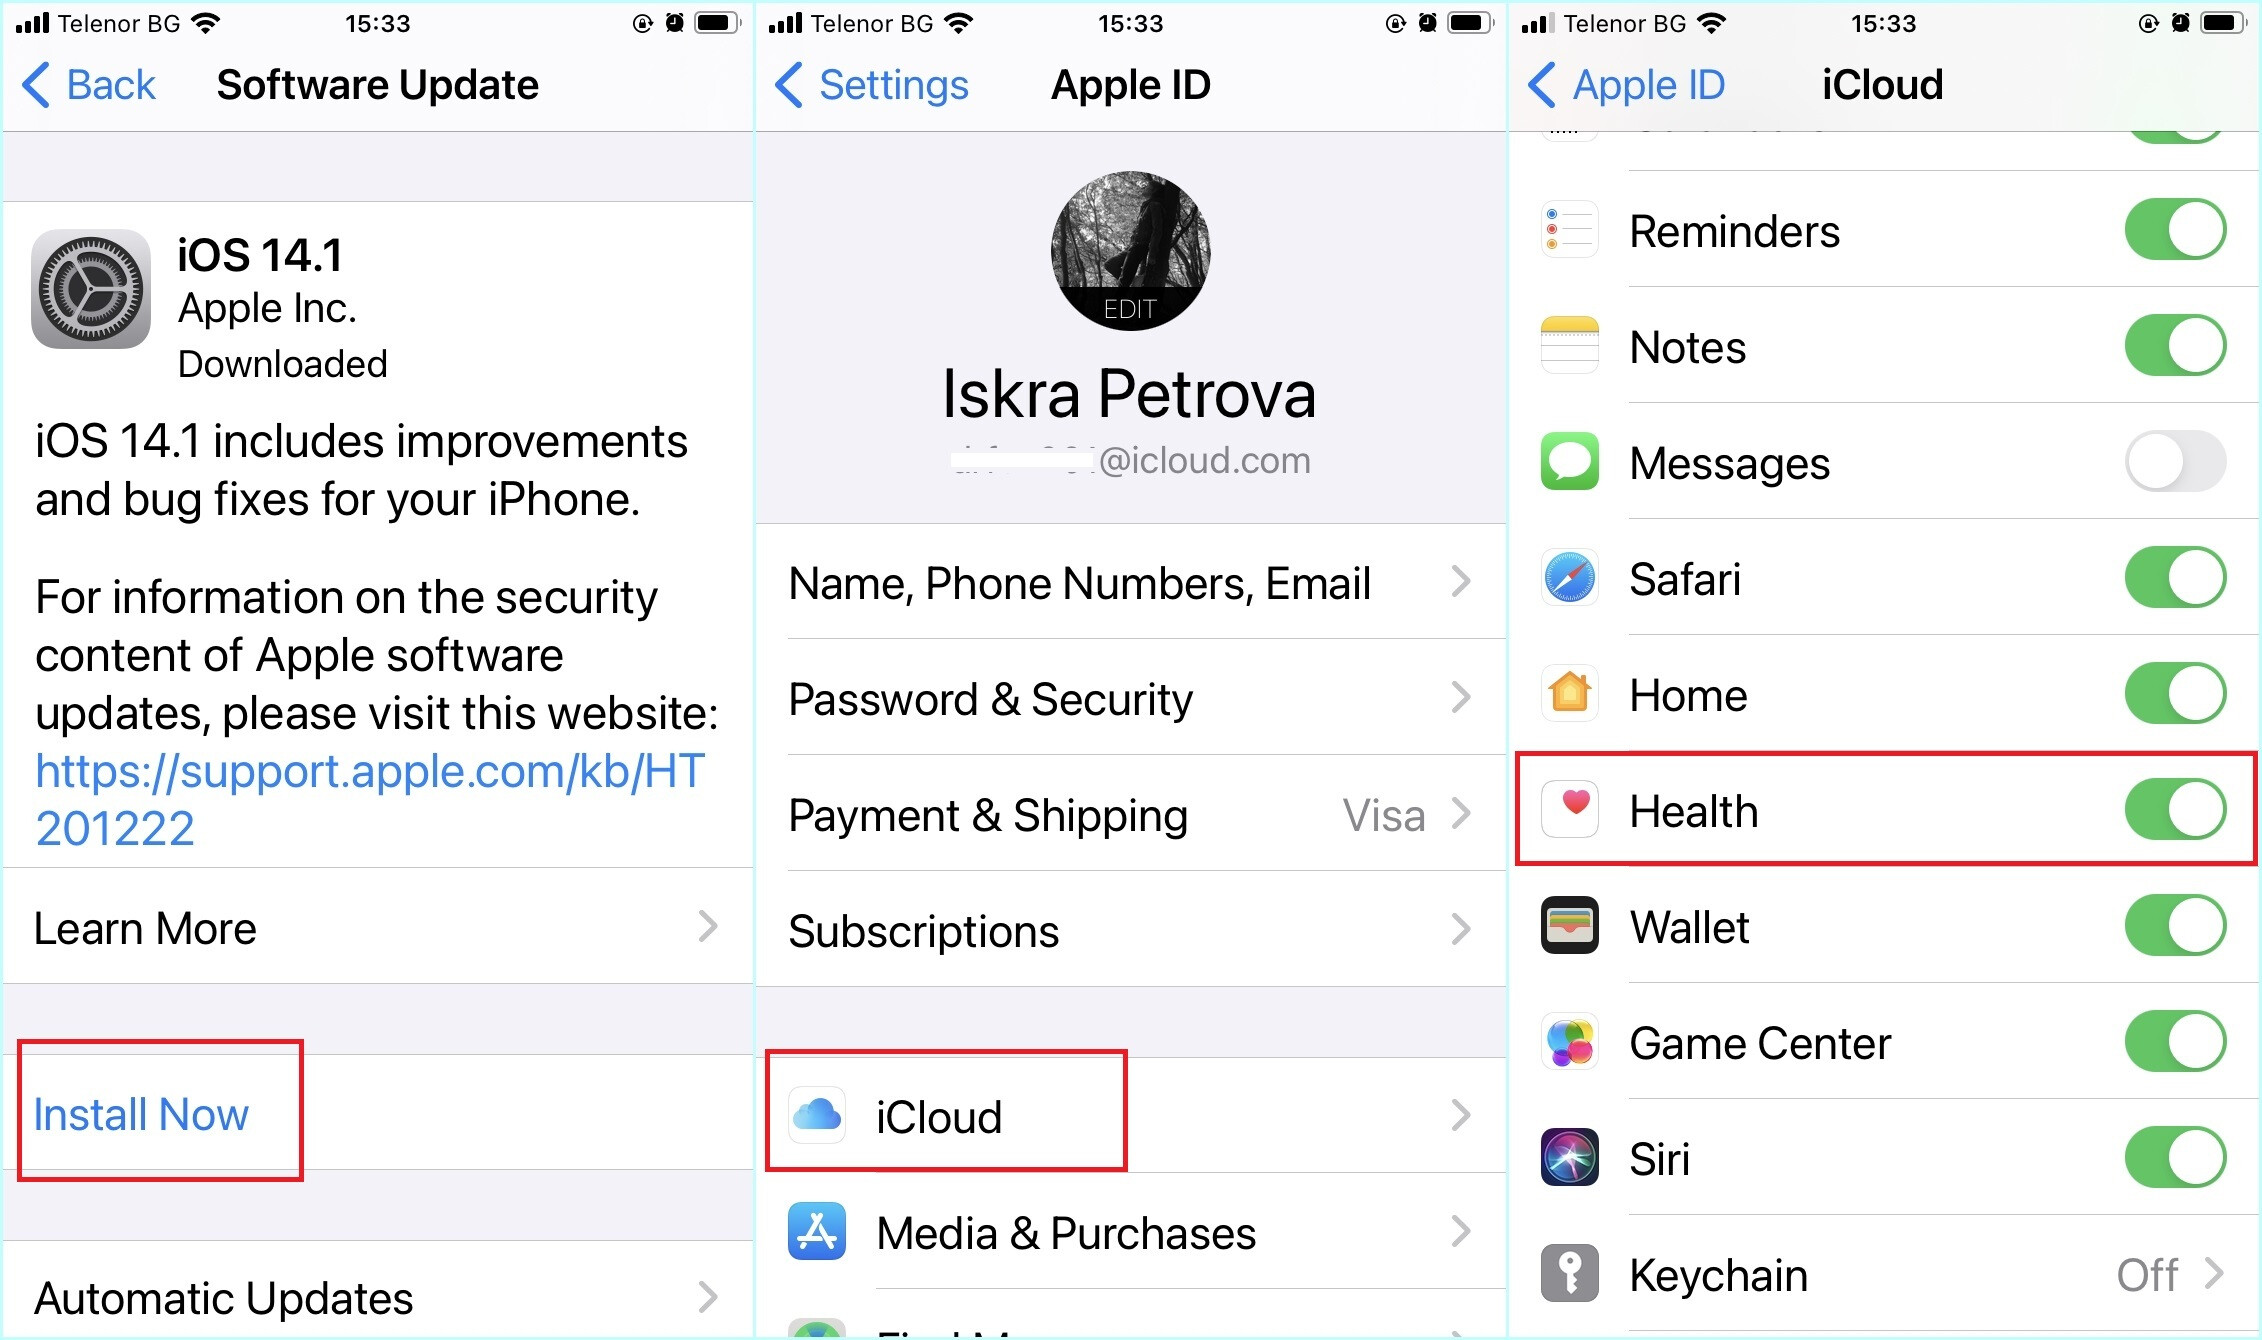 Update iPhone, Check if iCloud sync for Health data is on - How to pair your Apple Watch with your new iPhone